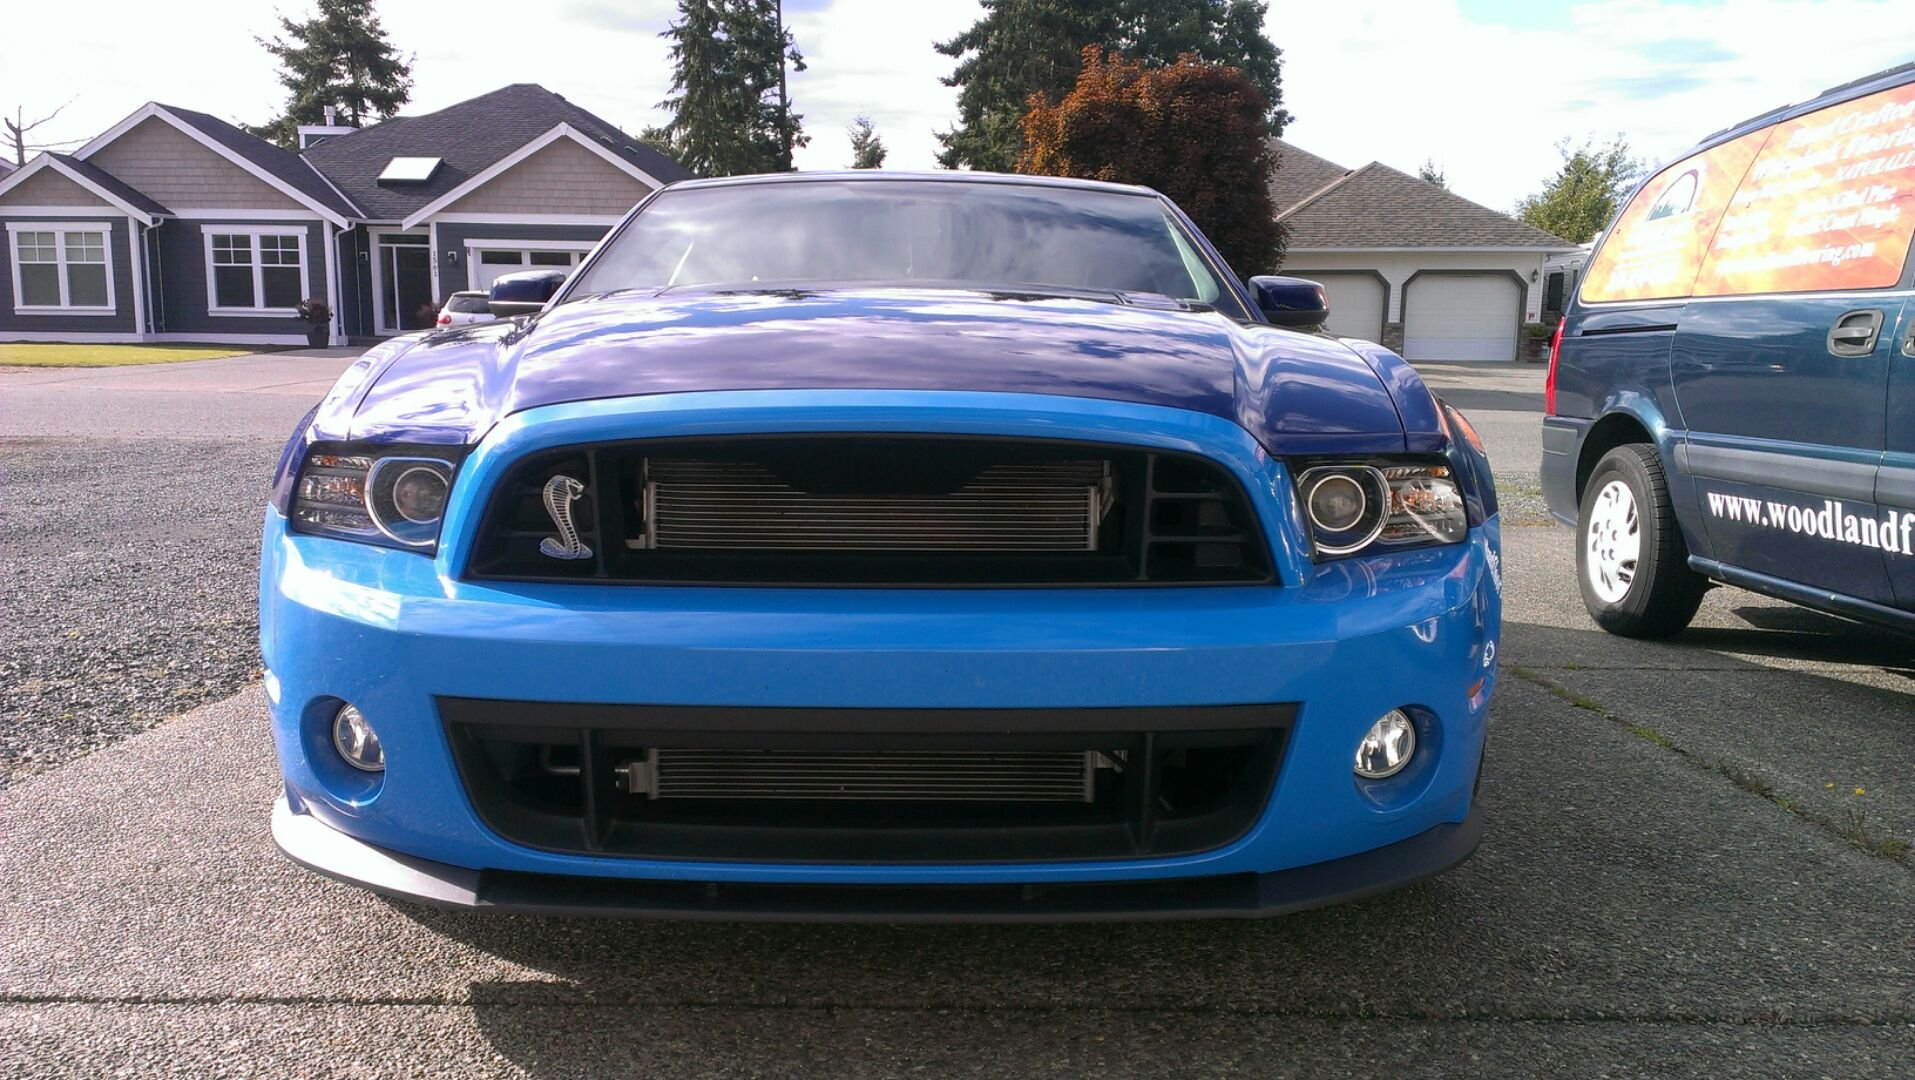 2013 gt to gt500 front end conversion archive s197 mustang forum s197forum com